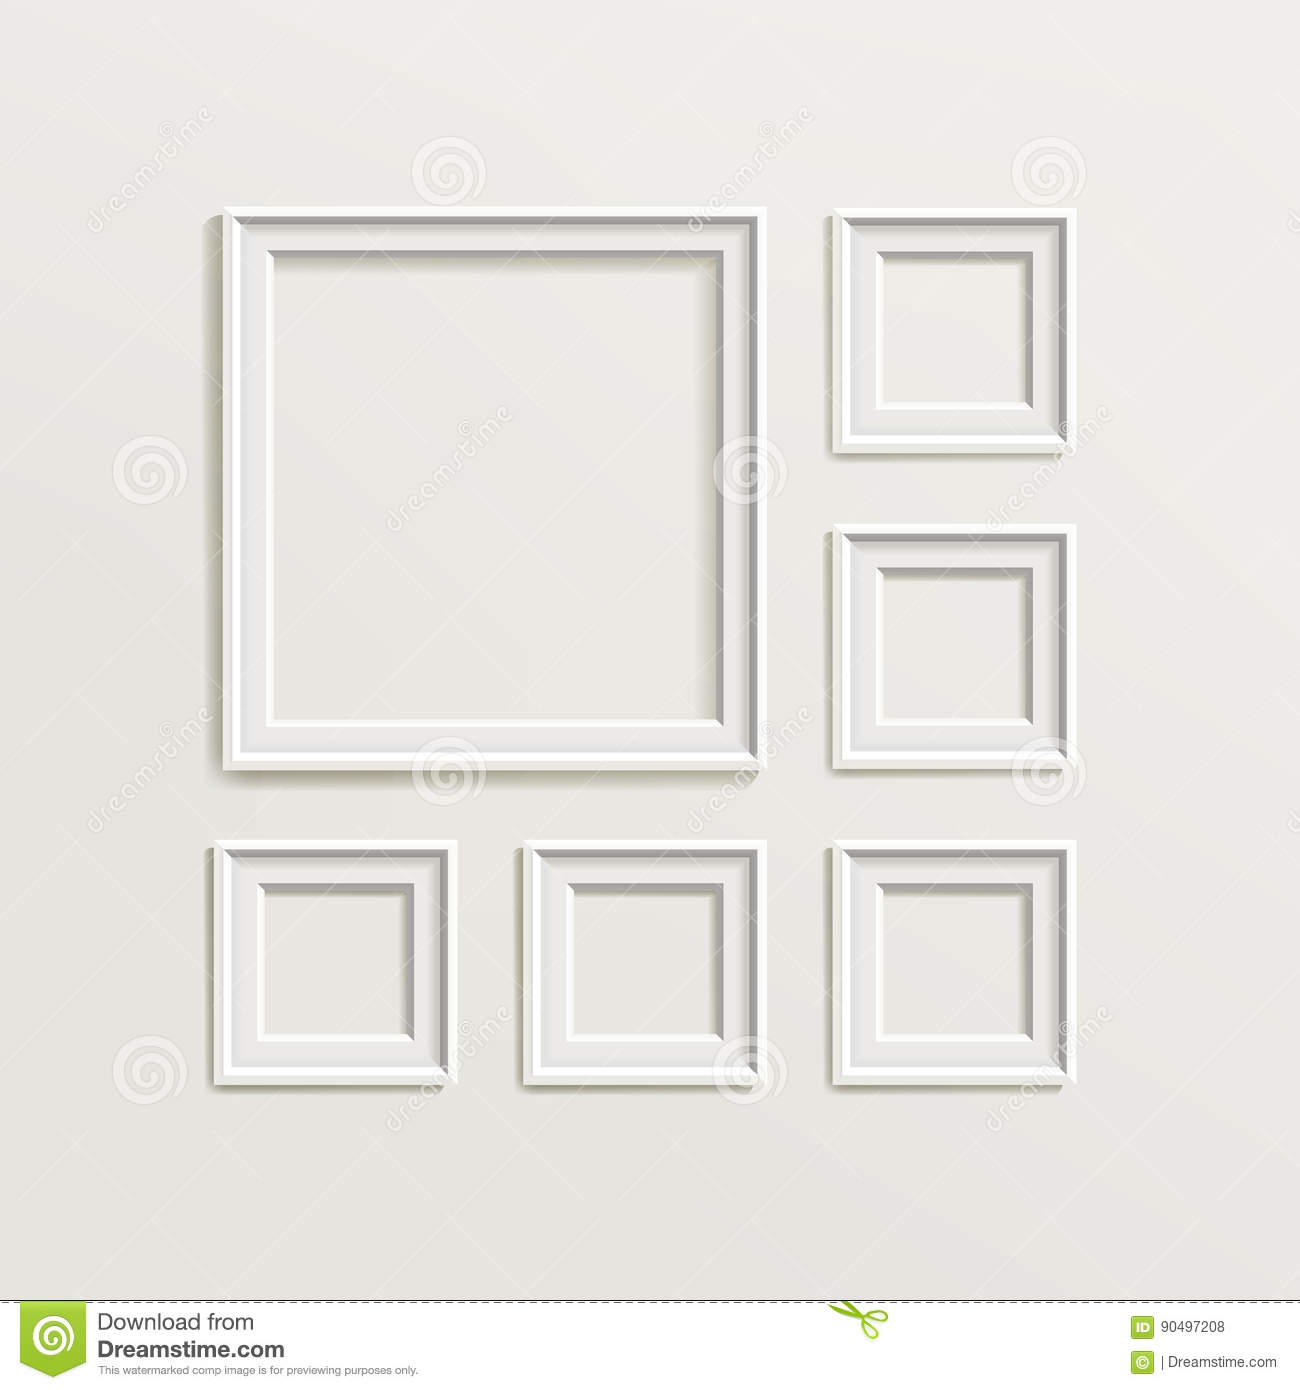 Wood frames set free vector - Blank Picture Frame Template Composition Set Gallery Interior With Empty Wooden Frames Indoor Vector Design